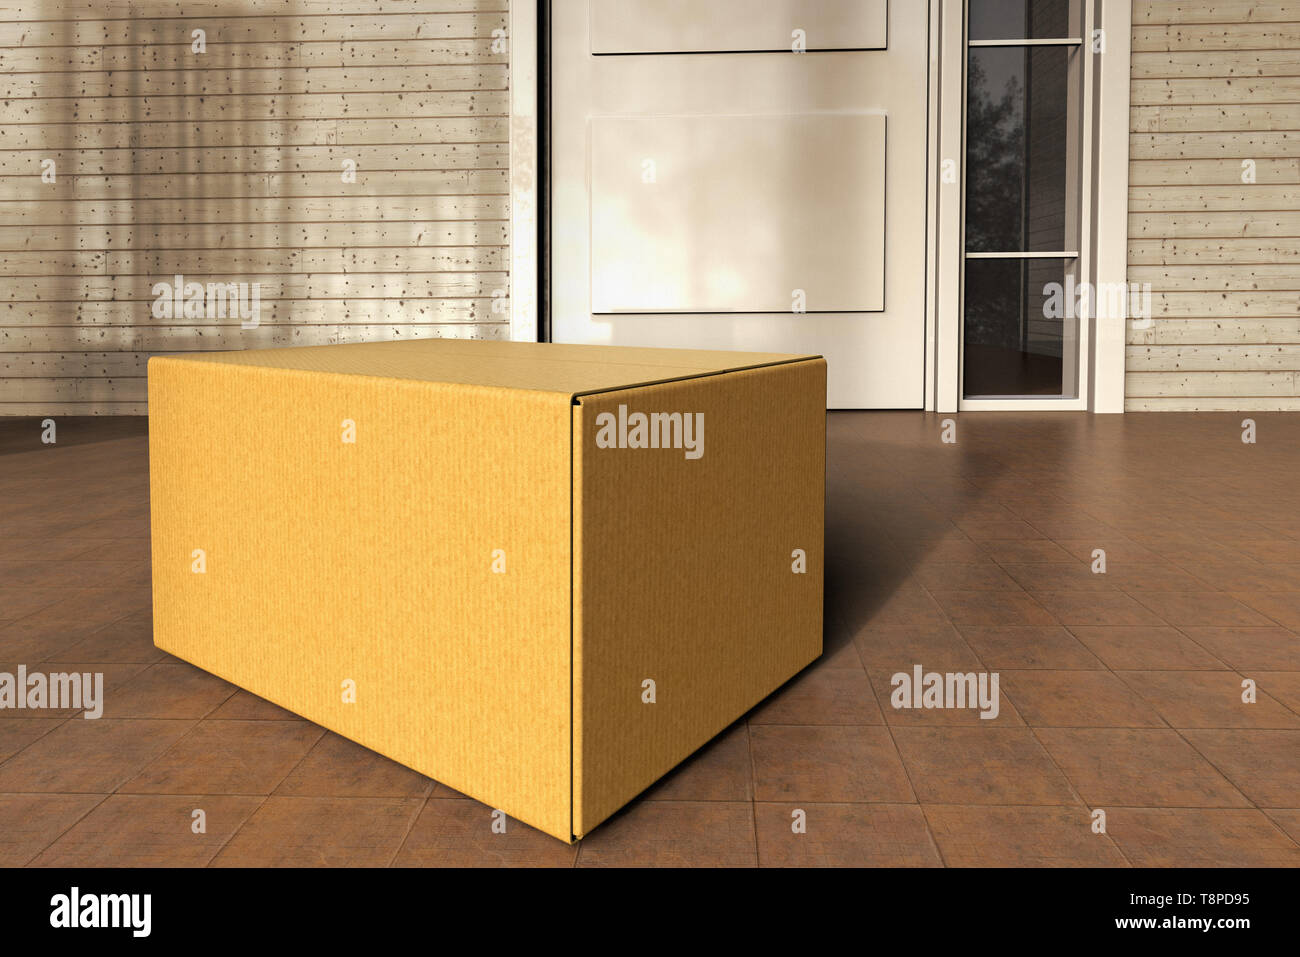 3D rendering of a box from an online purchase delivered to the front door. - Stock Image